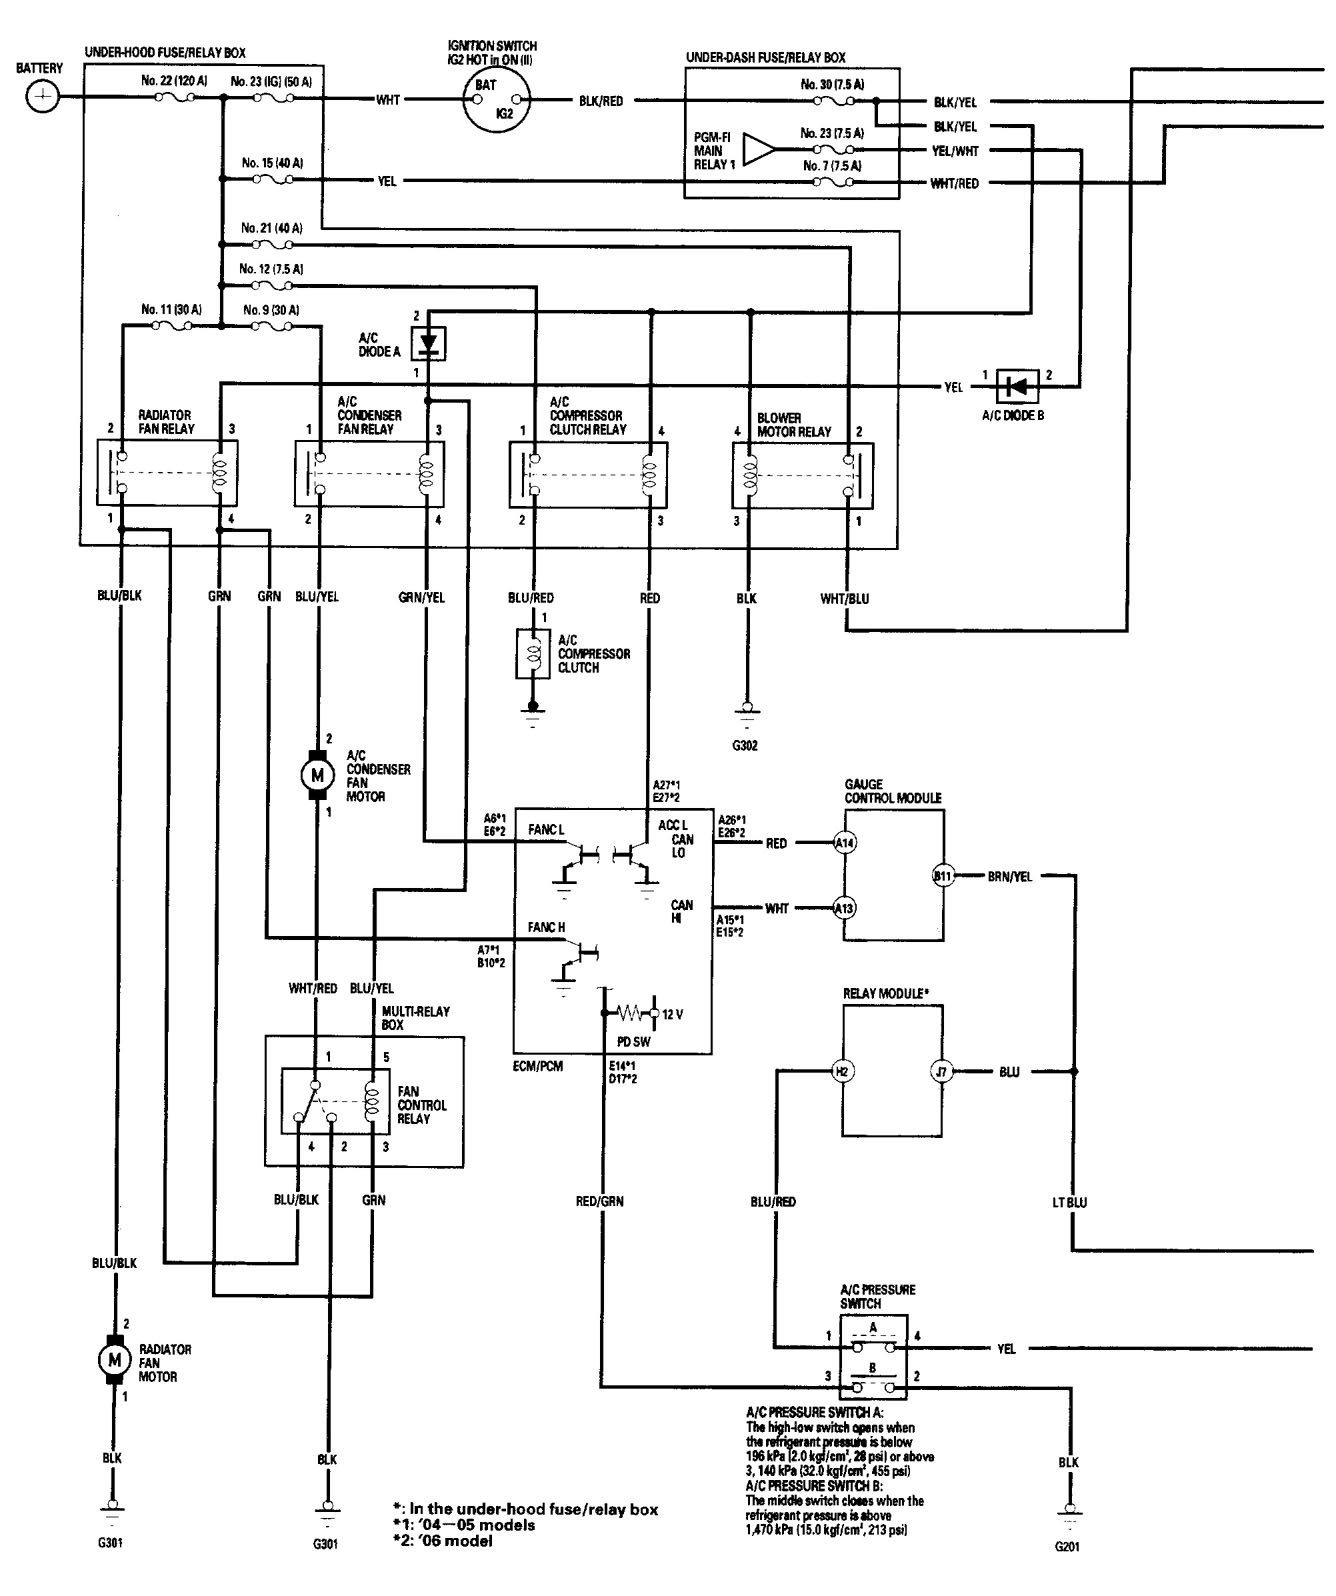 Hvac Controls Schematics Best Secret Wiring Diagram Refrigeration Control Acura Tl 2006 Diagrams Schematic Symbols